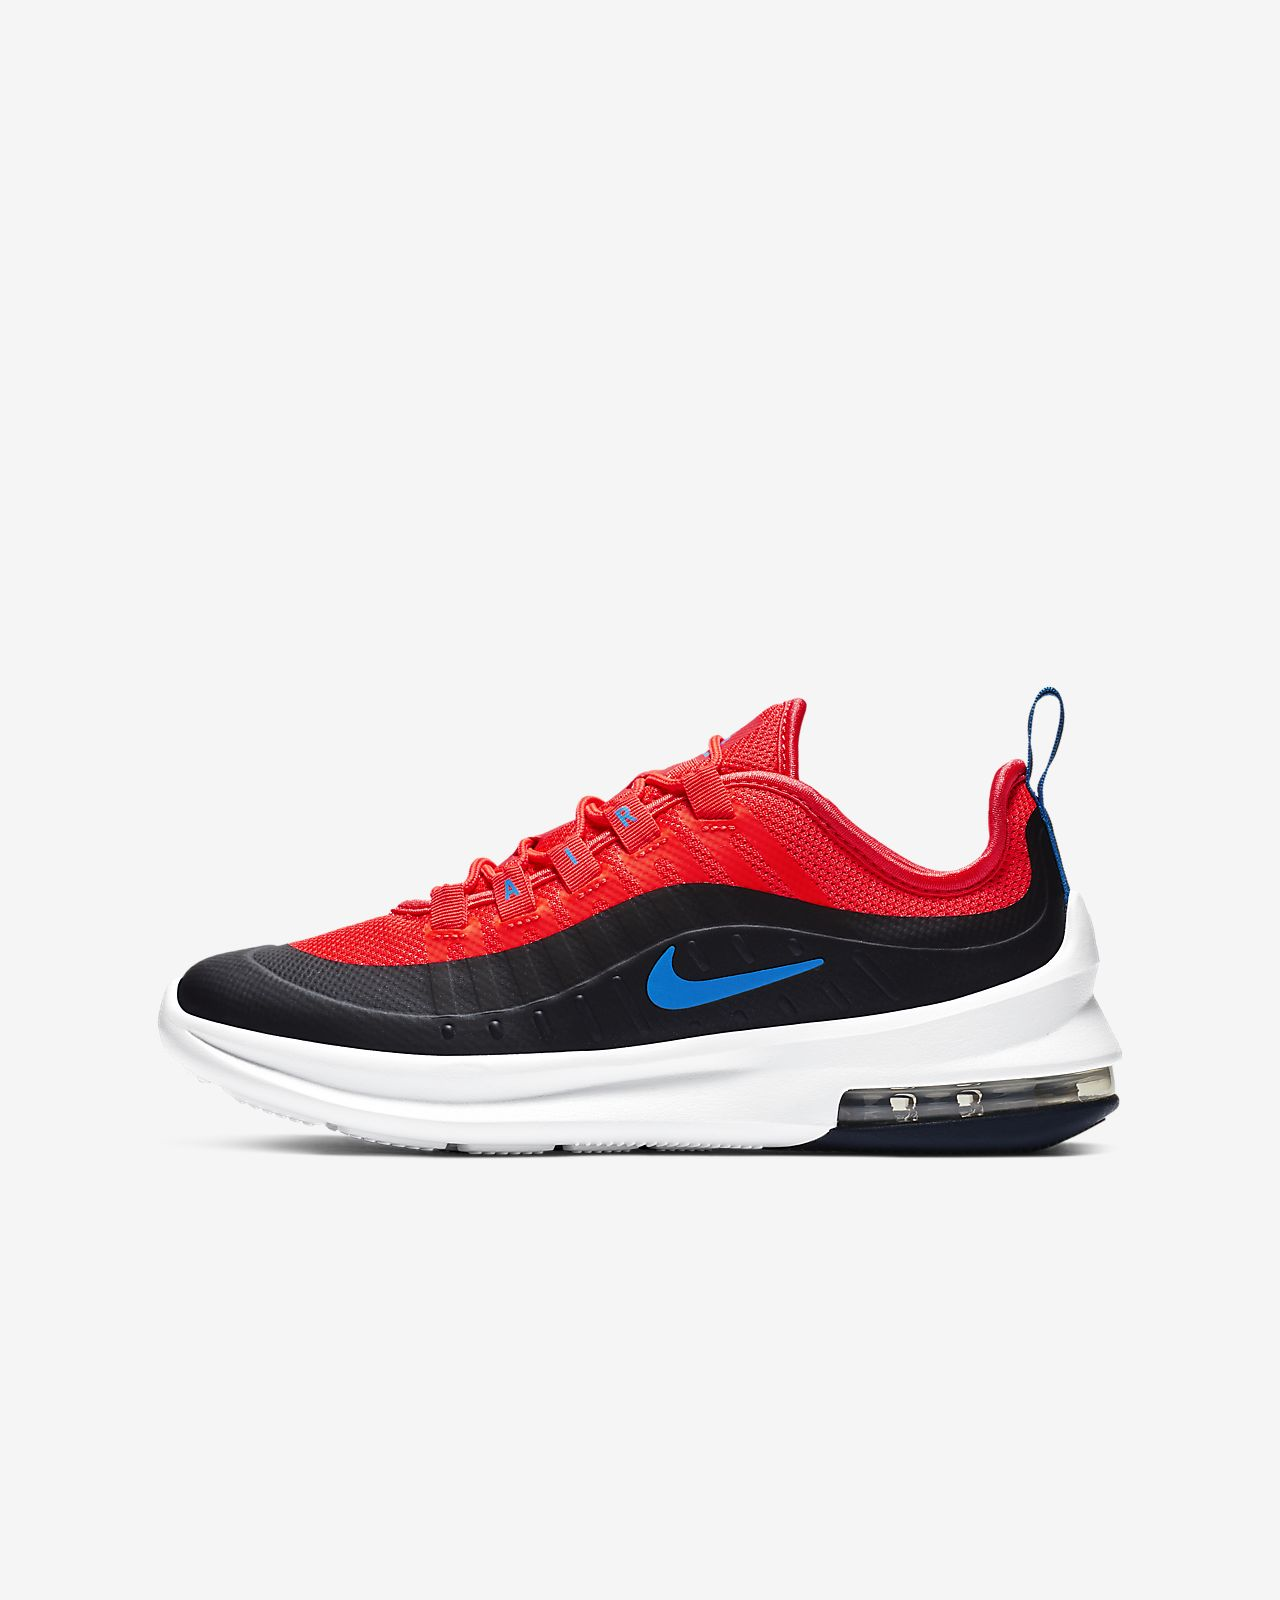 Nike Air Max Axis sko til store barn